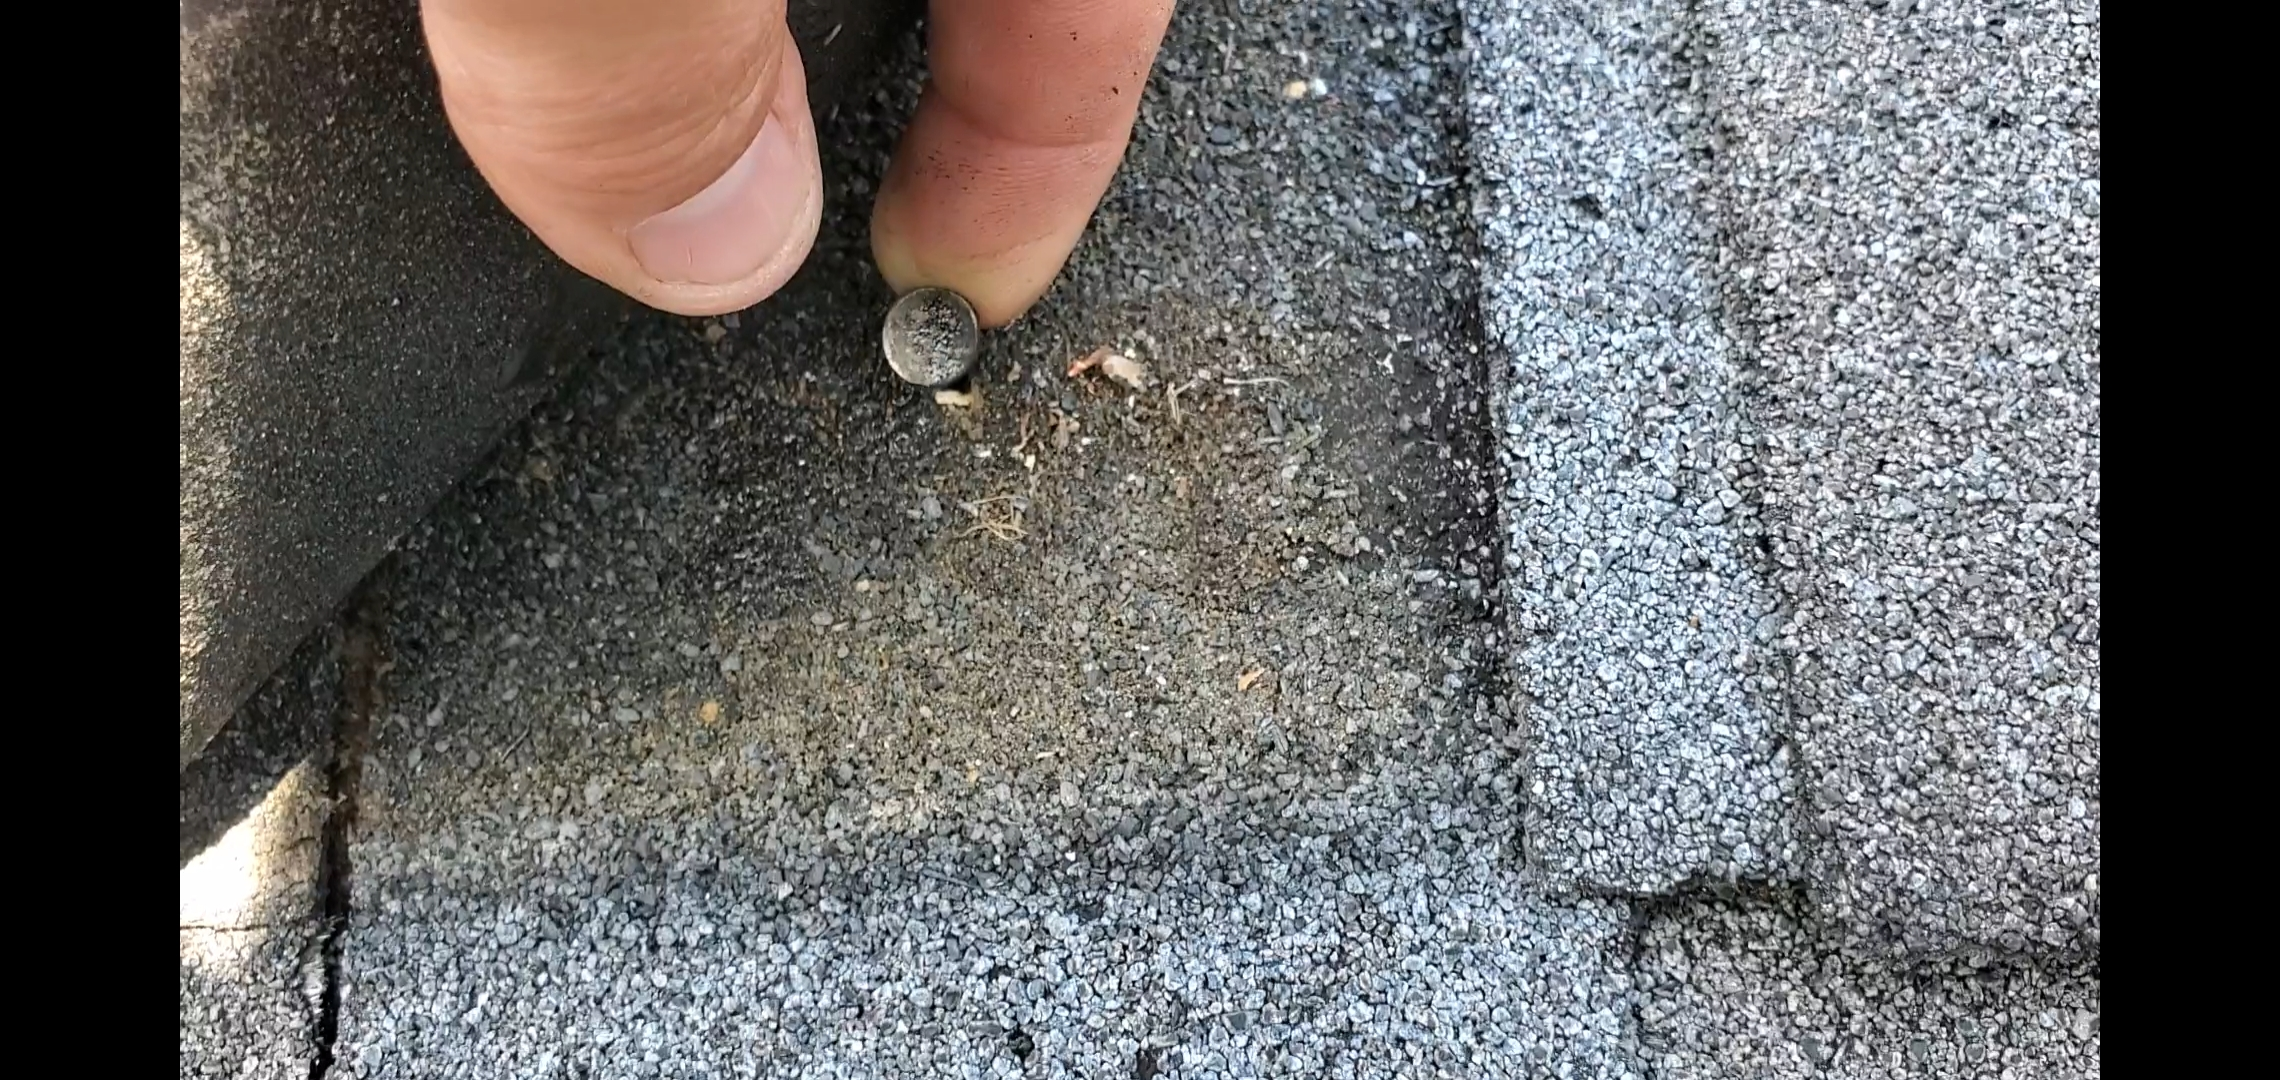 This is a picture of a nail in a single. The Nail should be much lower on the shingle in the nail strip. This nail is considered to be high nailed.